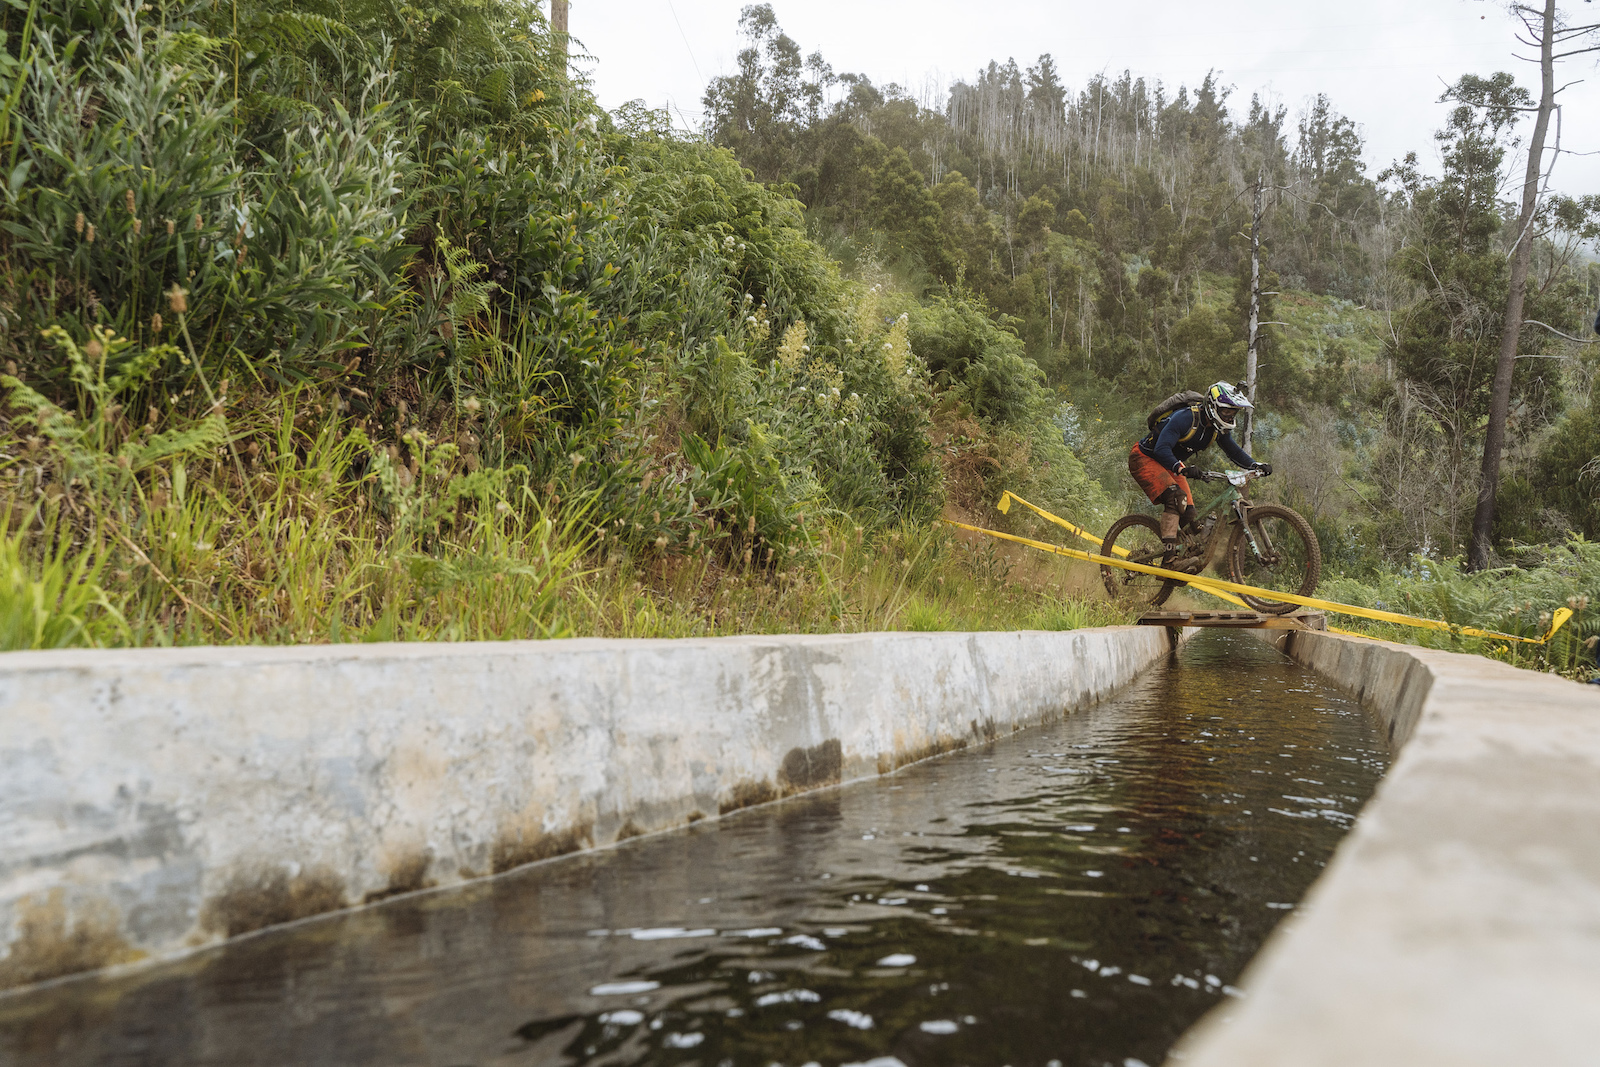 One more levada crossing.